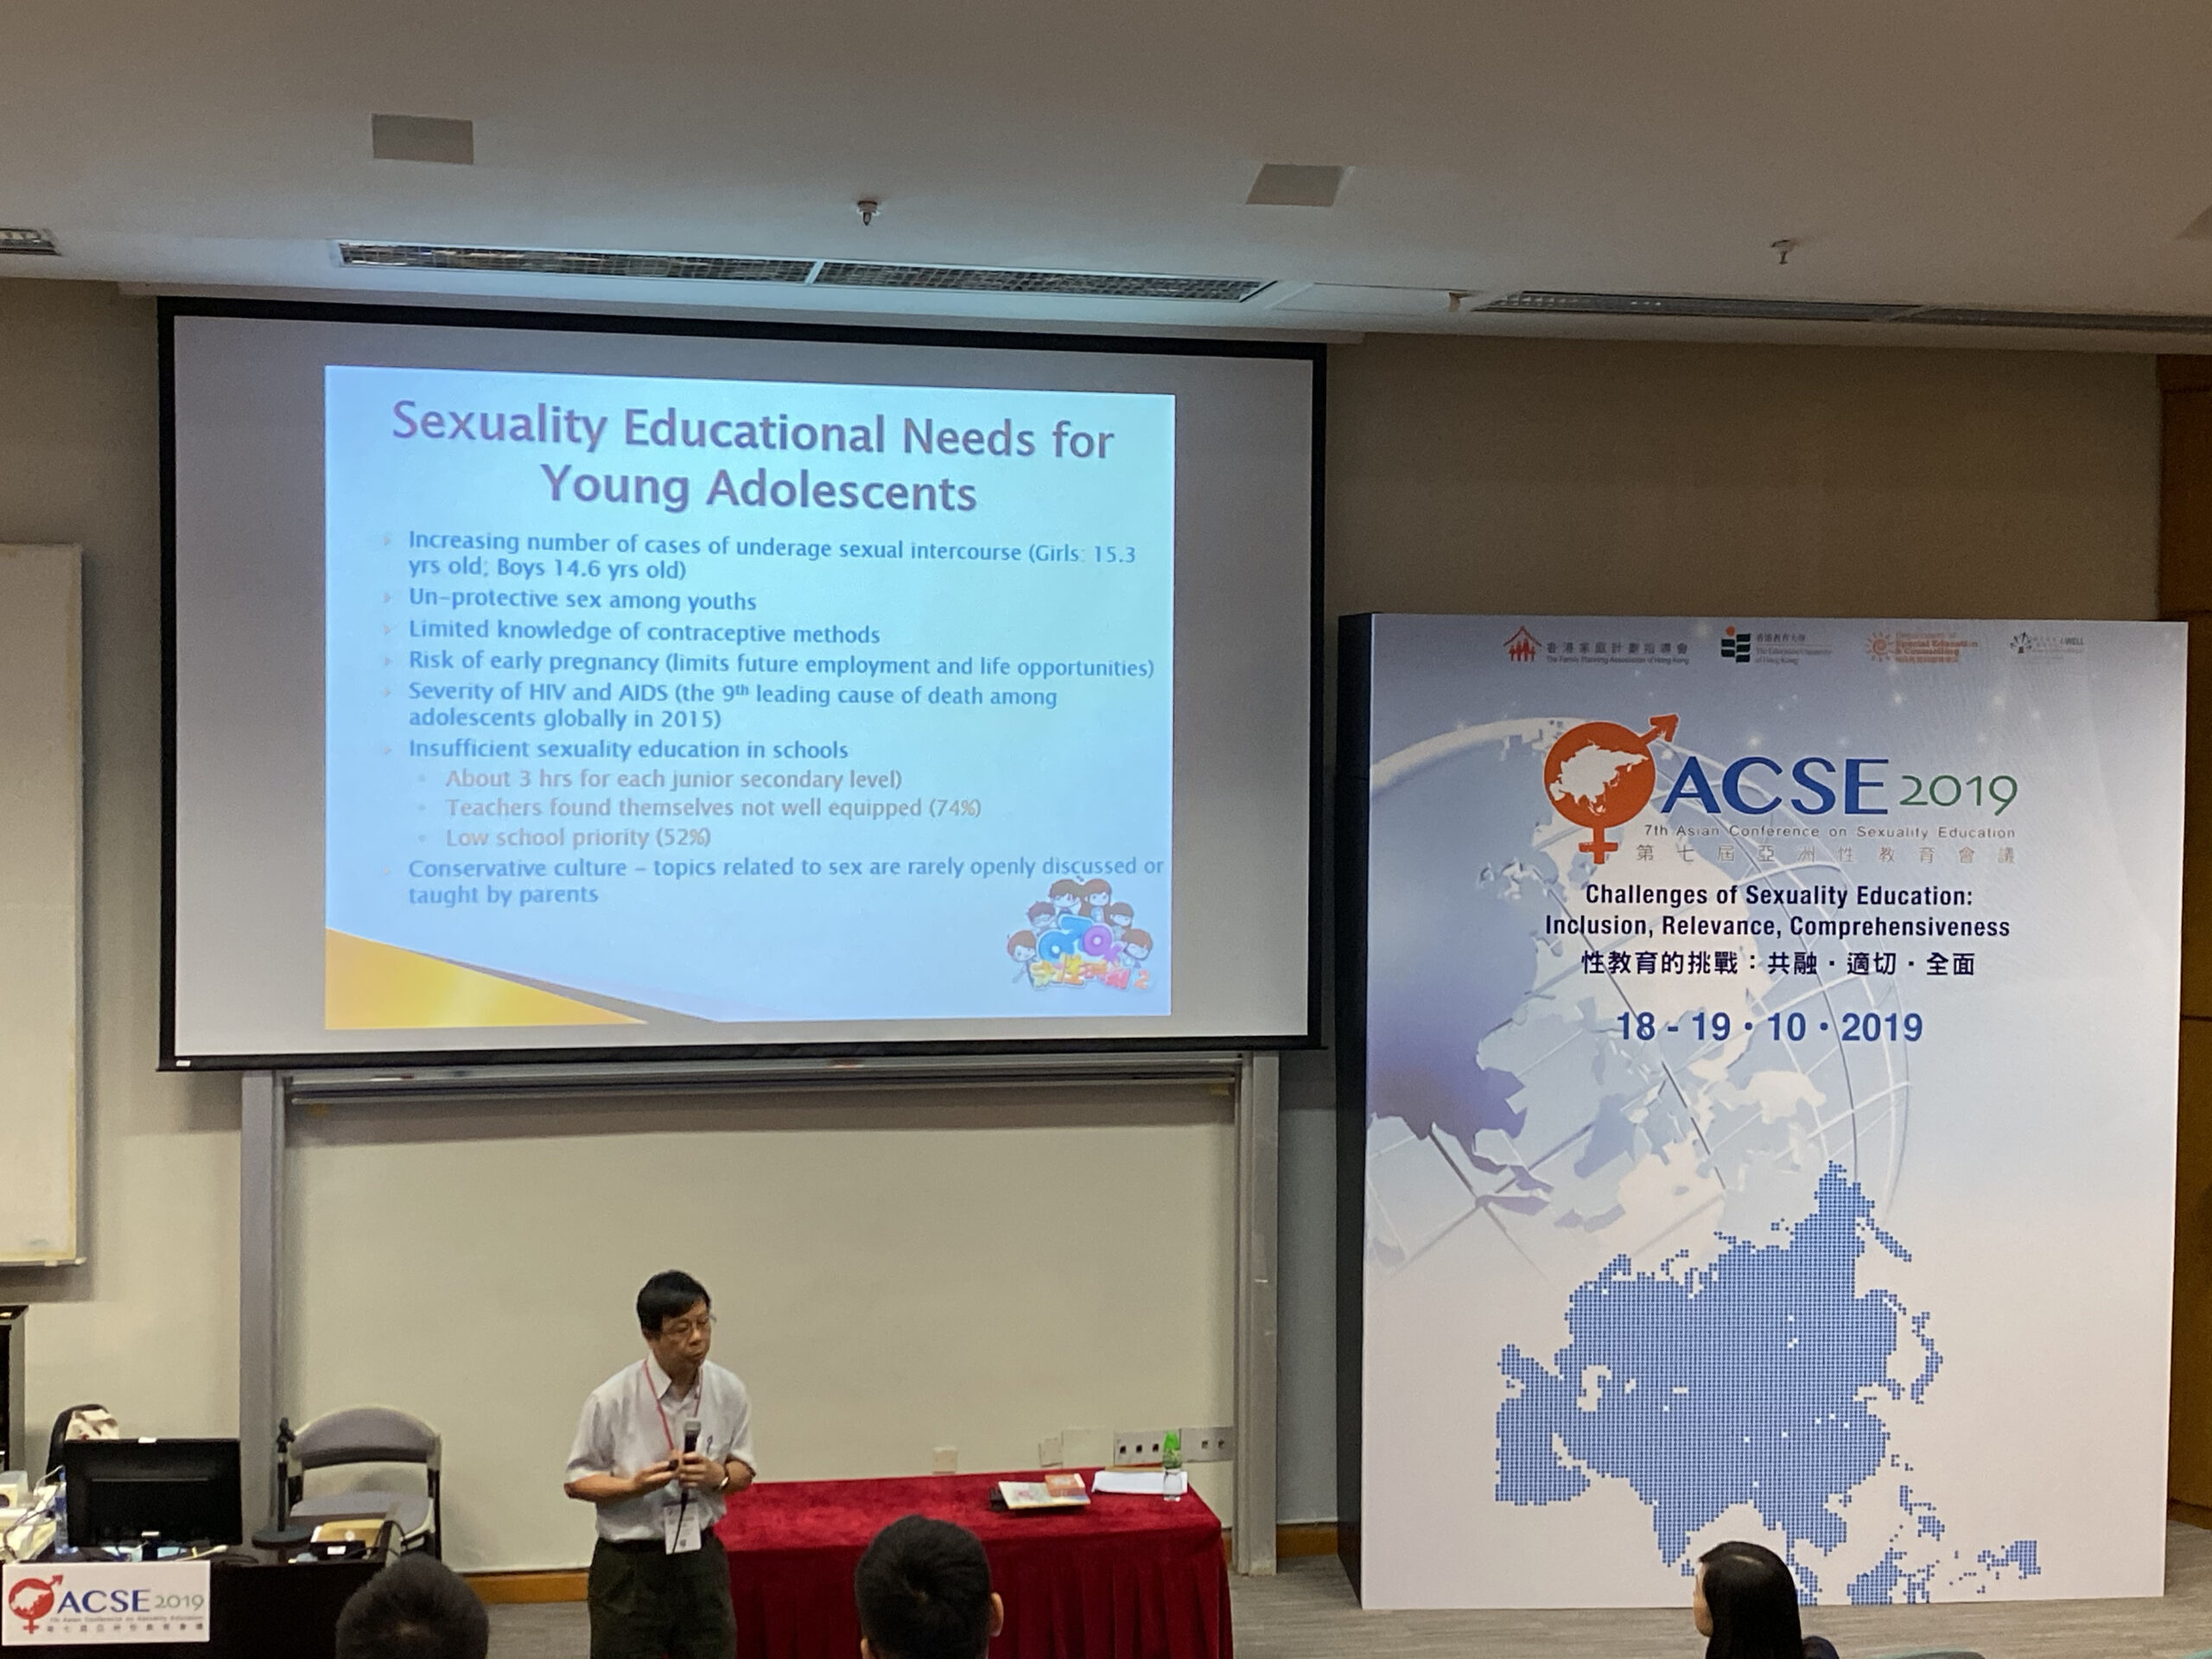 The 7th Asian Conference on Sexuality Education 2